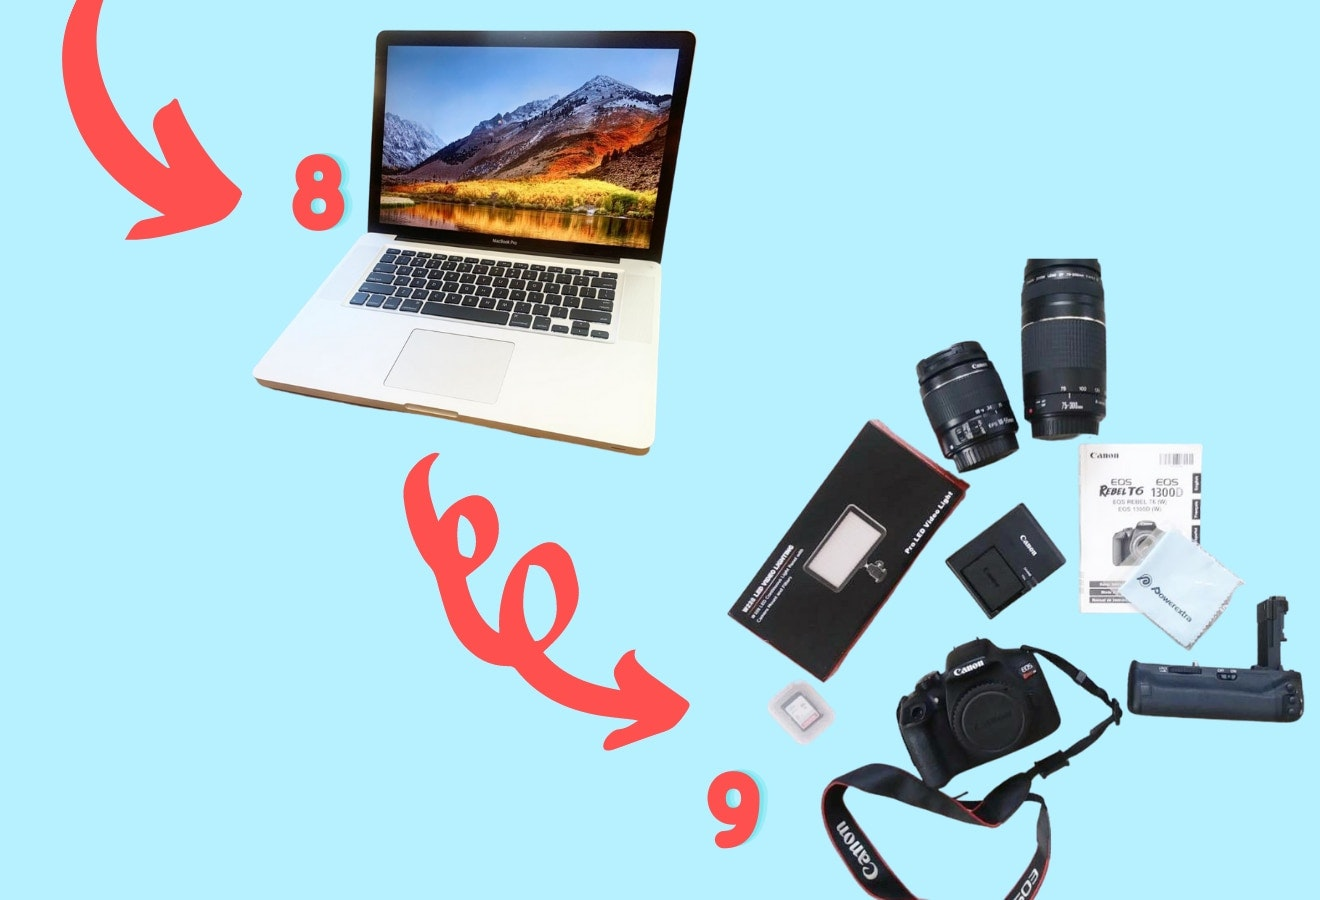 Trades 8 and 9 - a 2011 macbook and a canon camera set